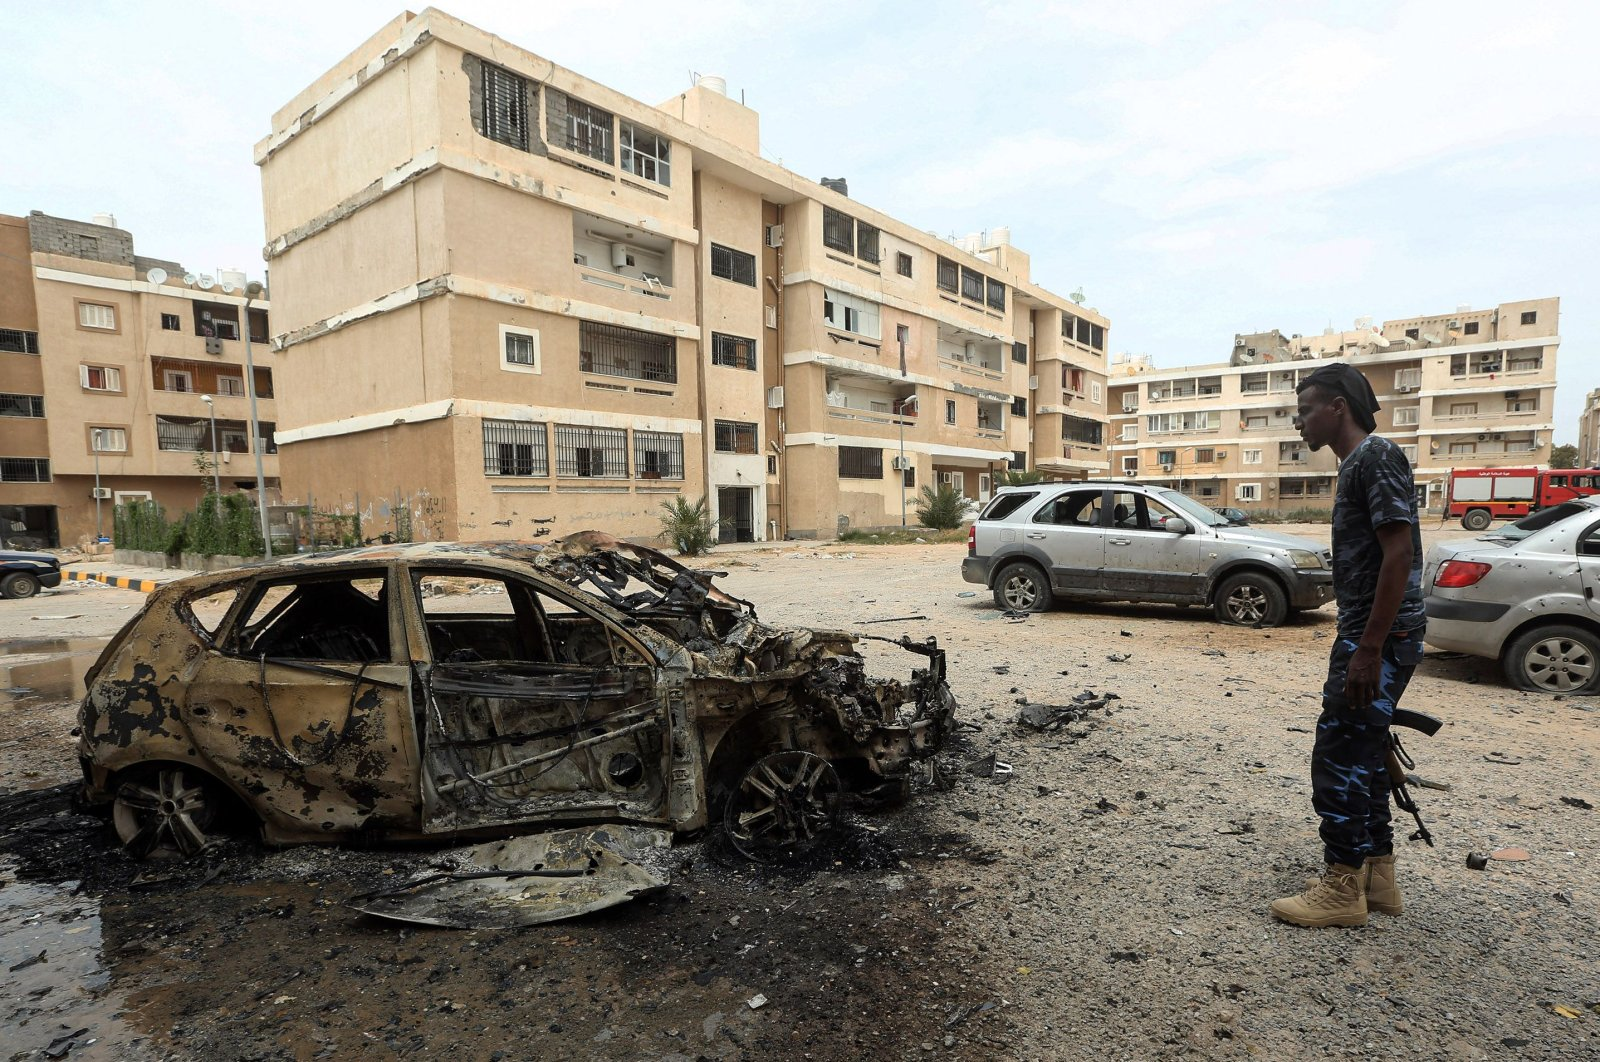 A fighter loyal to Libya's U.N.-recognized Government of National Accord (GNA) stands next to a destroyed car following bombardment in the residential Bab Bin Ghashir neighborhood of Libya's capital Tripoli on May 9, 2020.